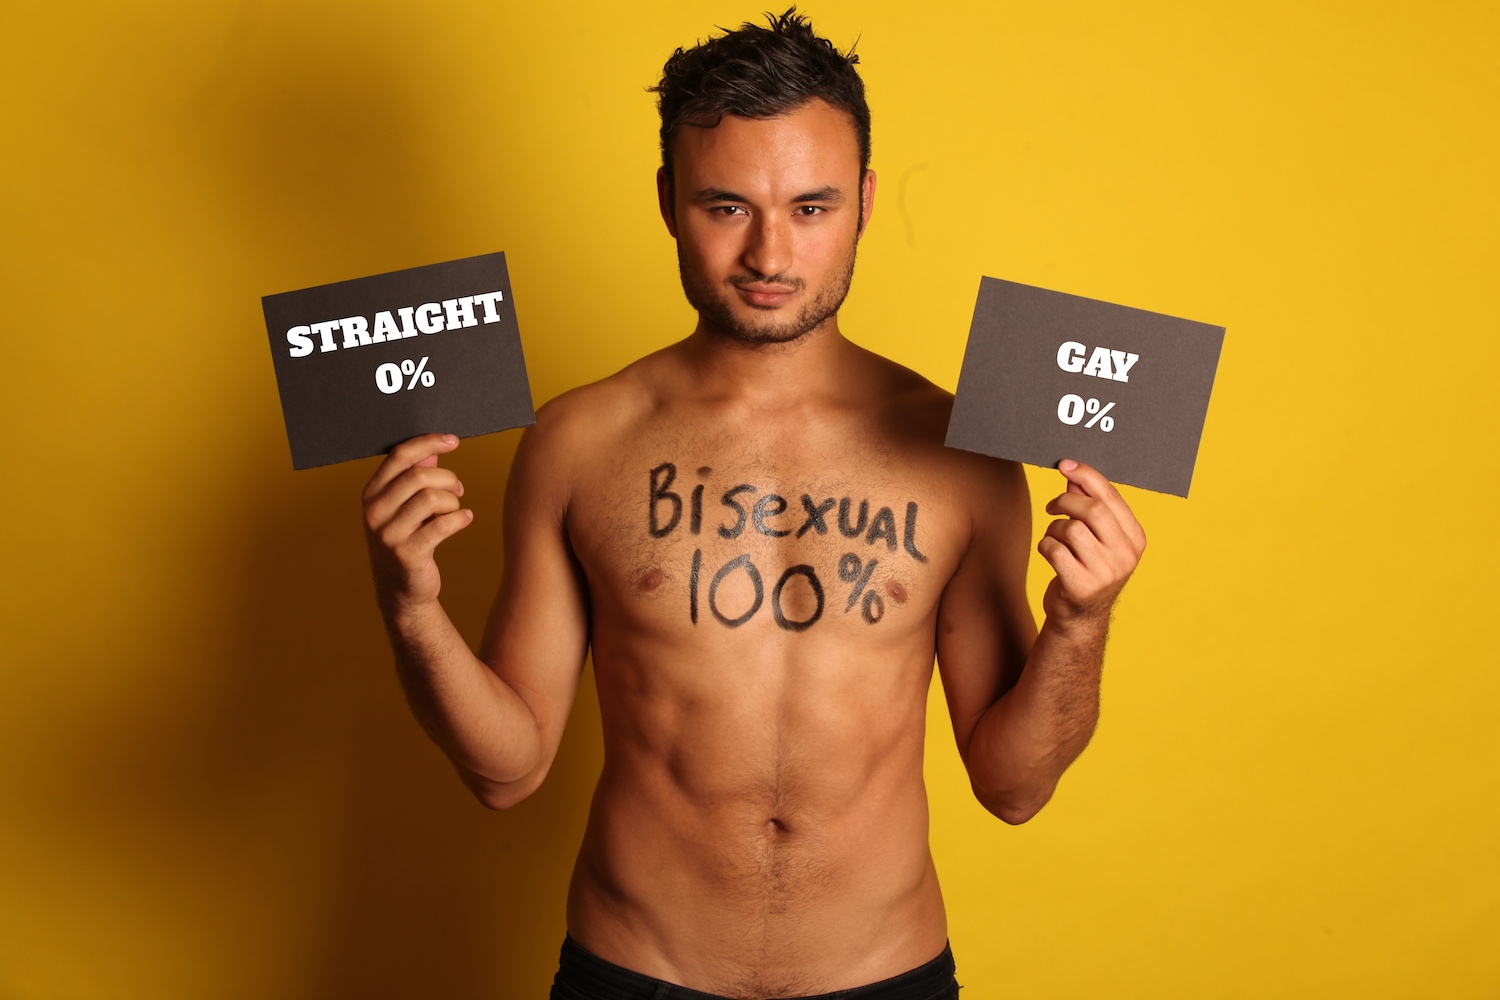 why gay men and straight women have They found that in gay men and women, the blood flowed to areas involved in fear and anxiety, whereas in straight men and lesbians it tended to flow to pockets linked to aggression.